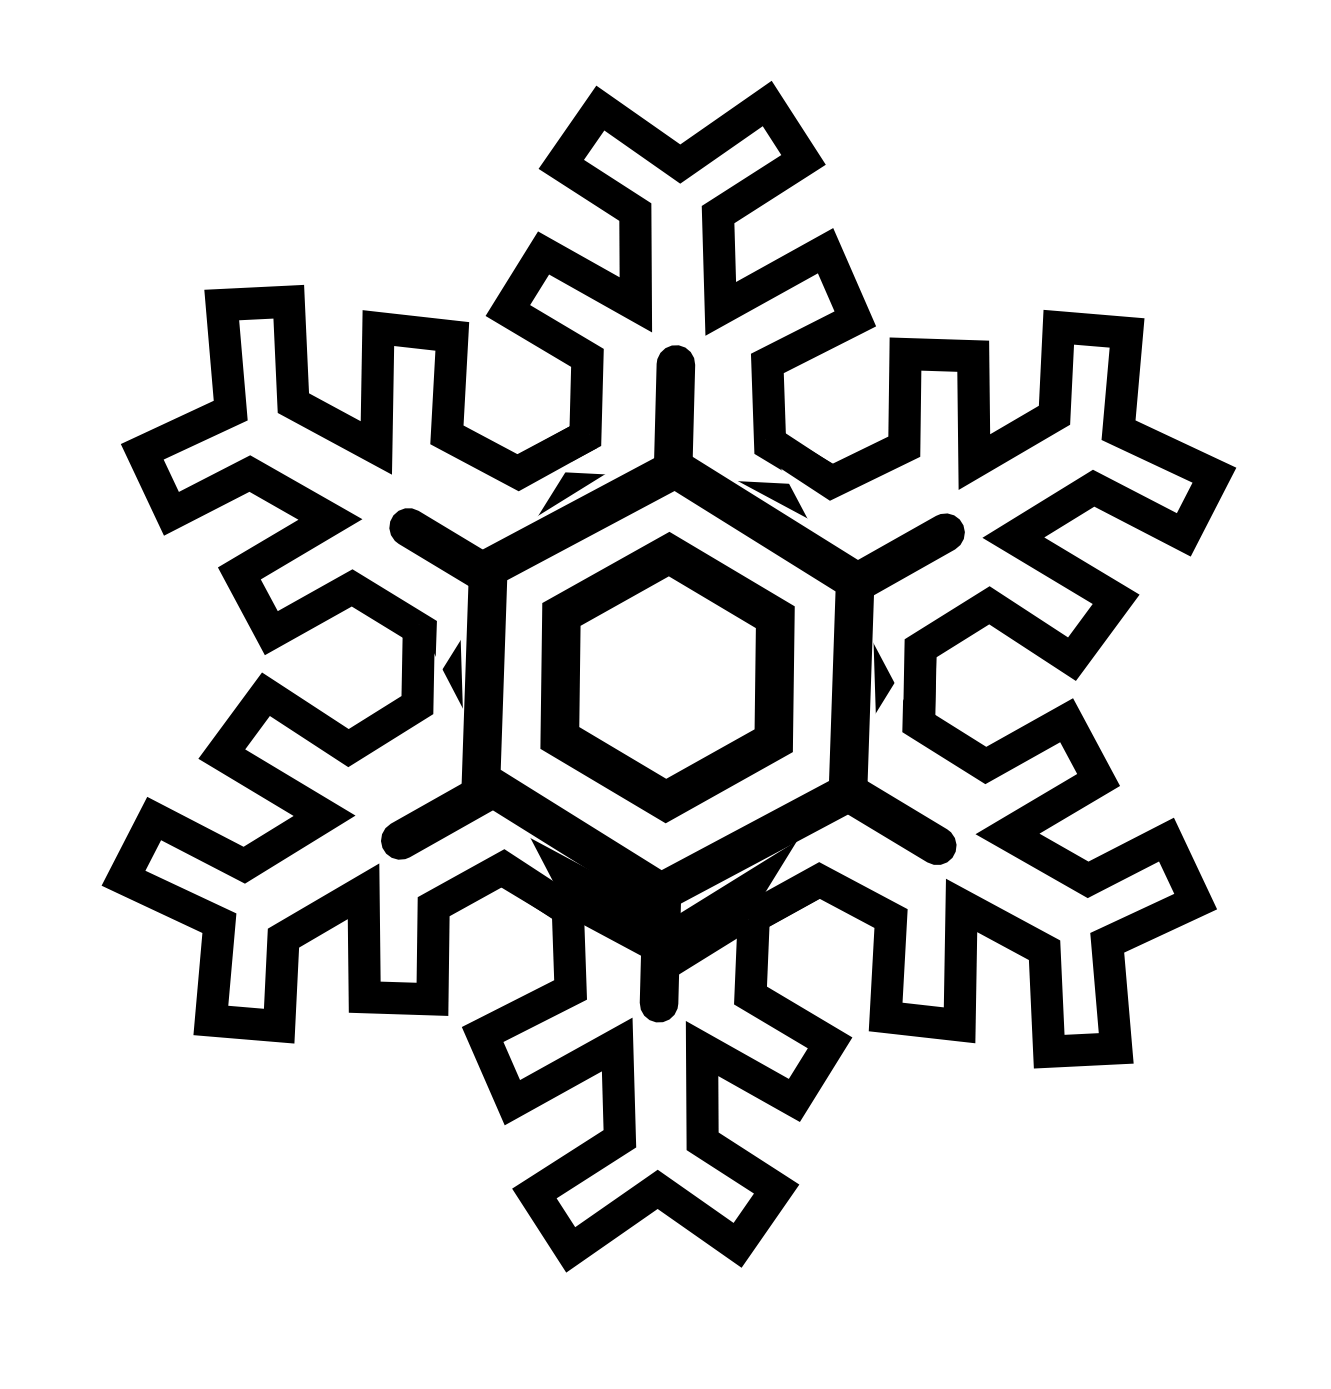 Snowflake Stylized Black White Line Art Christmas Xmas